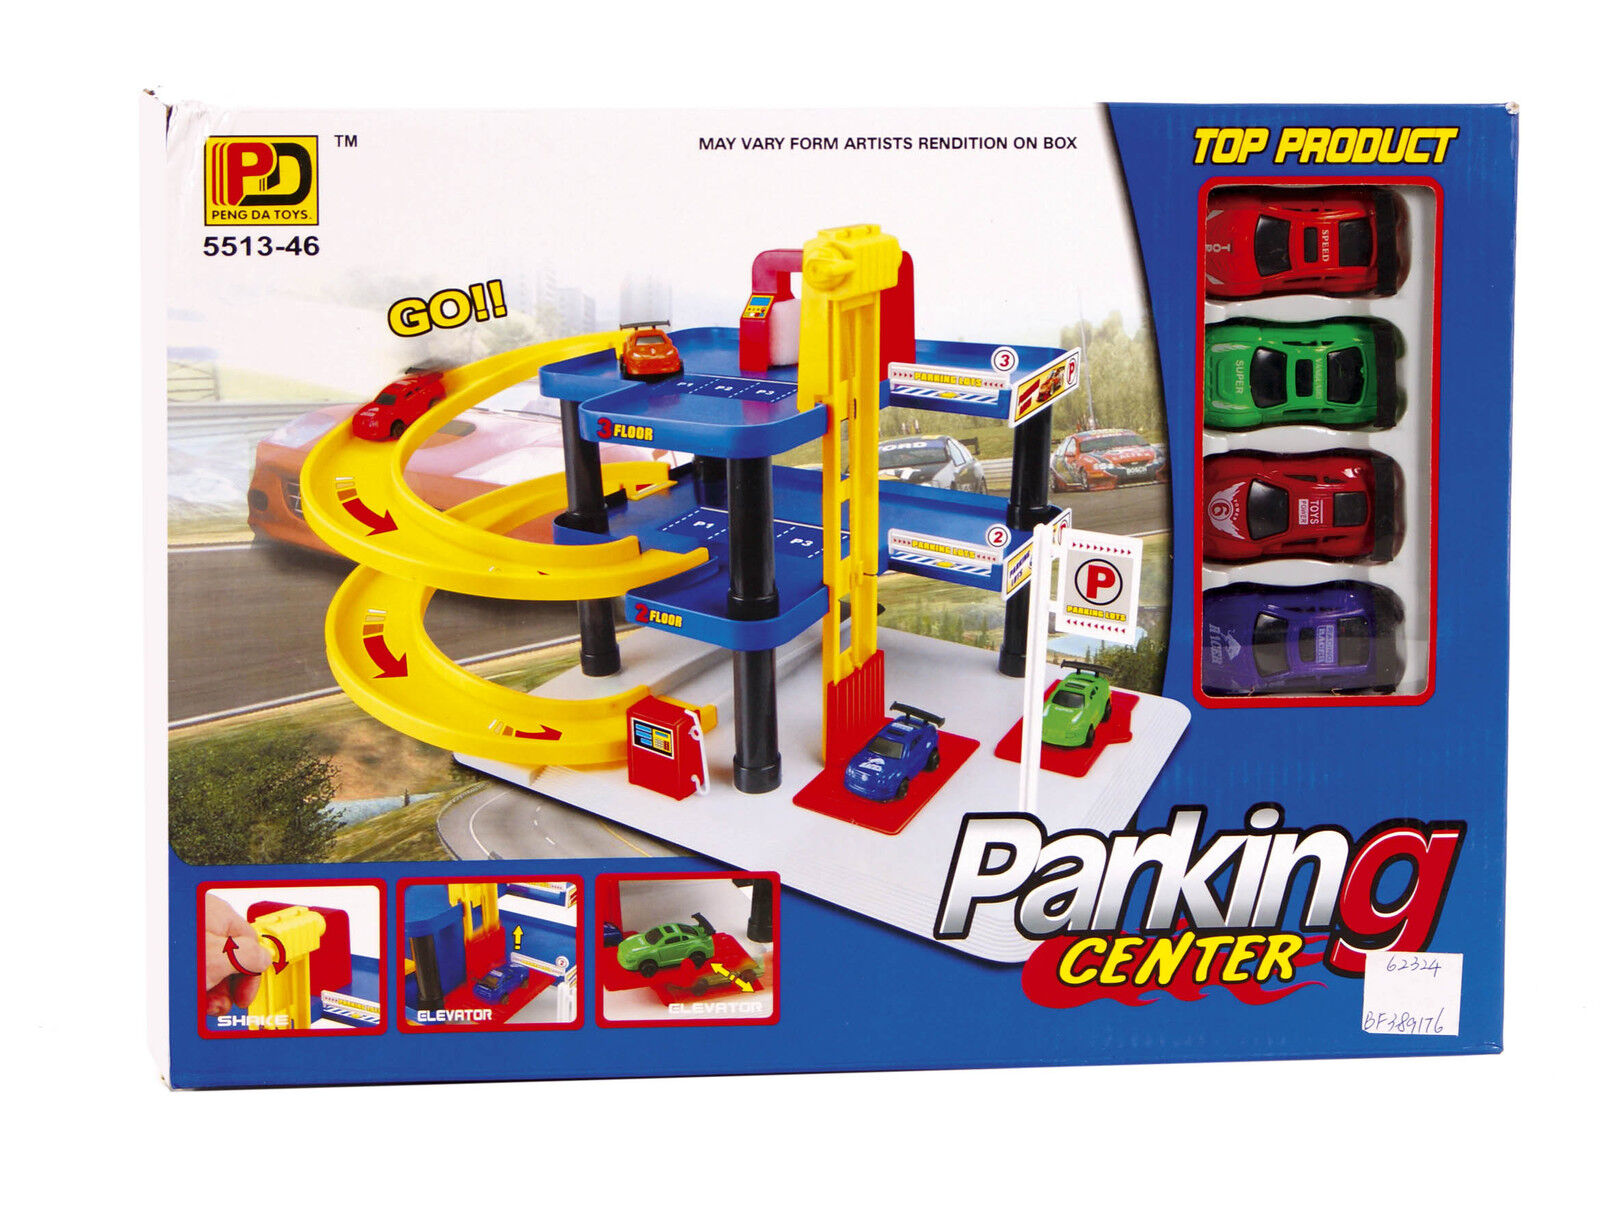 New Toy Cars : New toy car park parking garage play set childrens